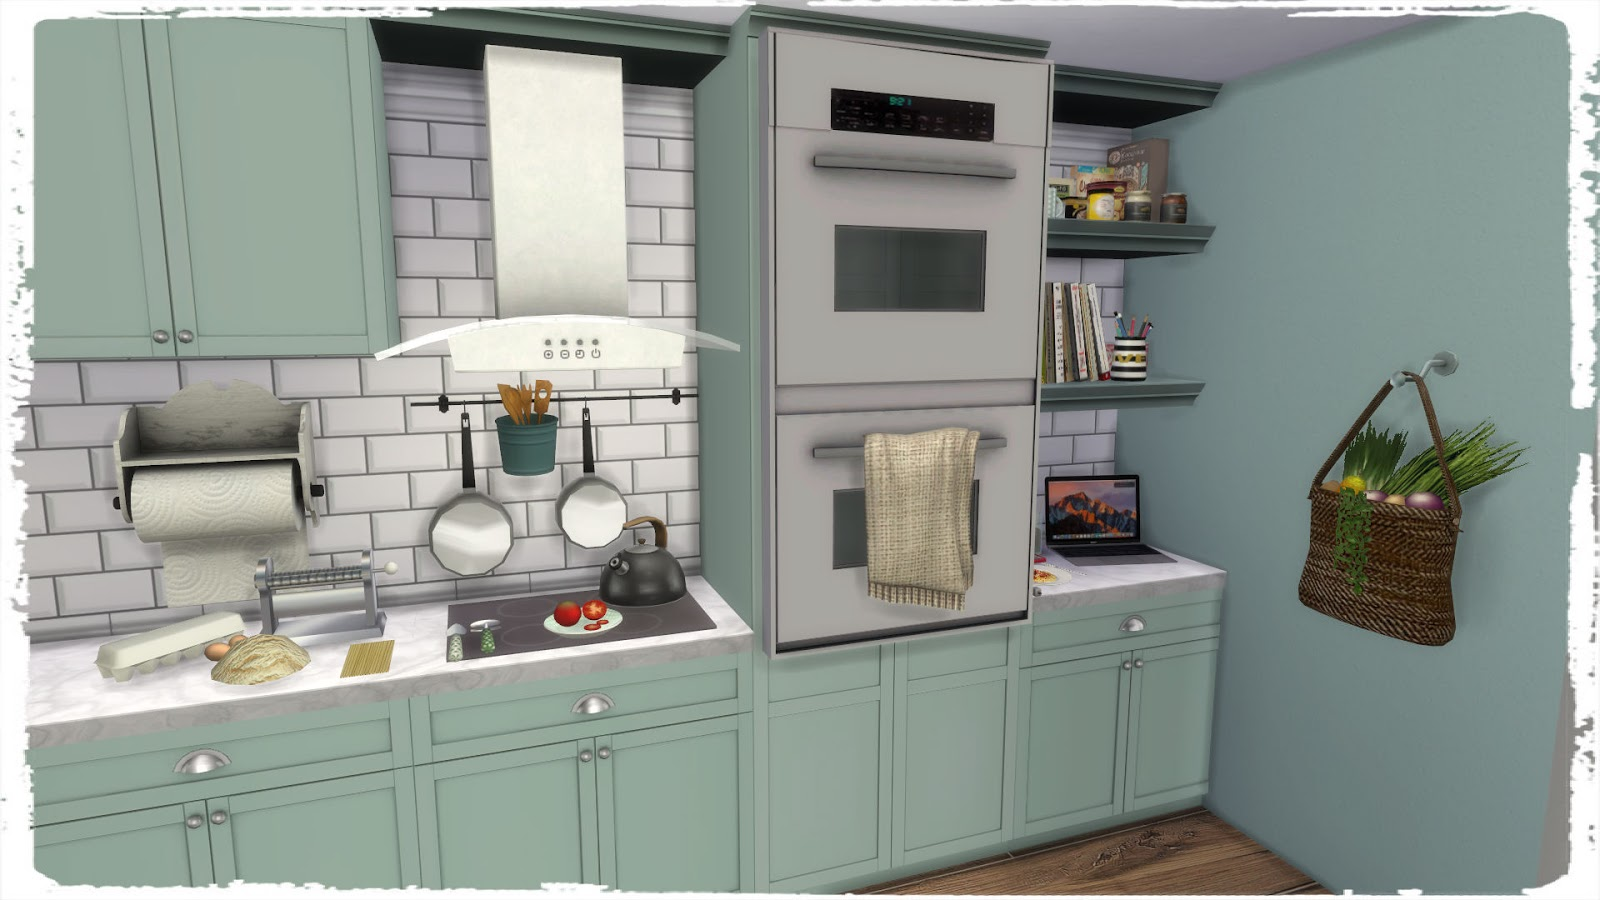 Sims 4 Kitchen With Laundry Dinha Interiors Inside Ideas Interiors design about Everything [magnanprojects.com]